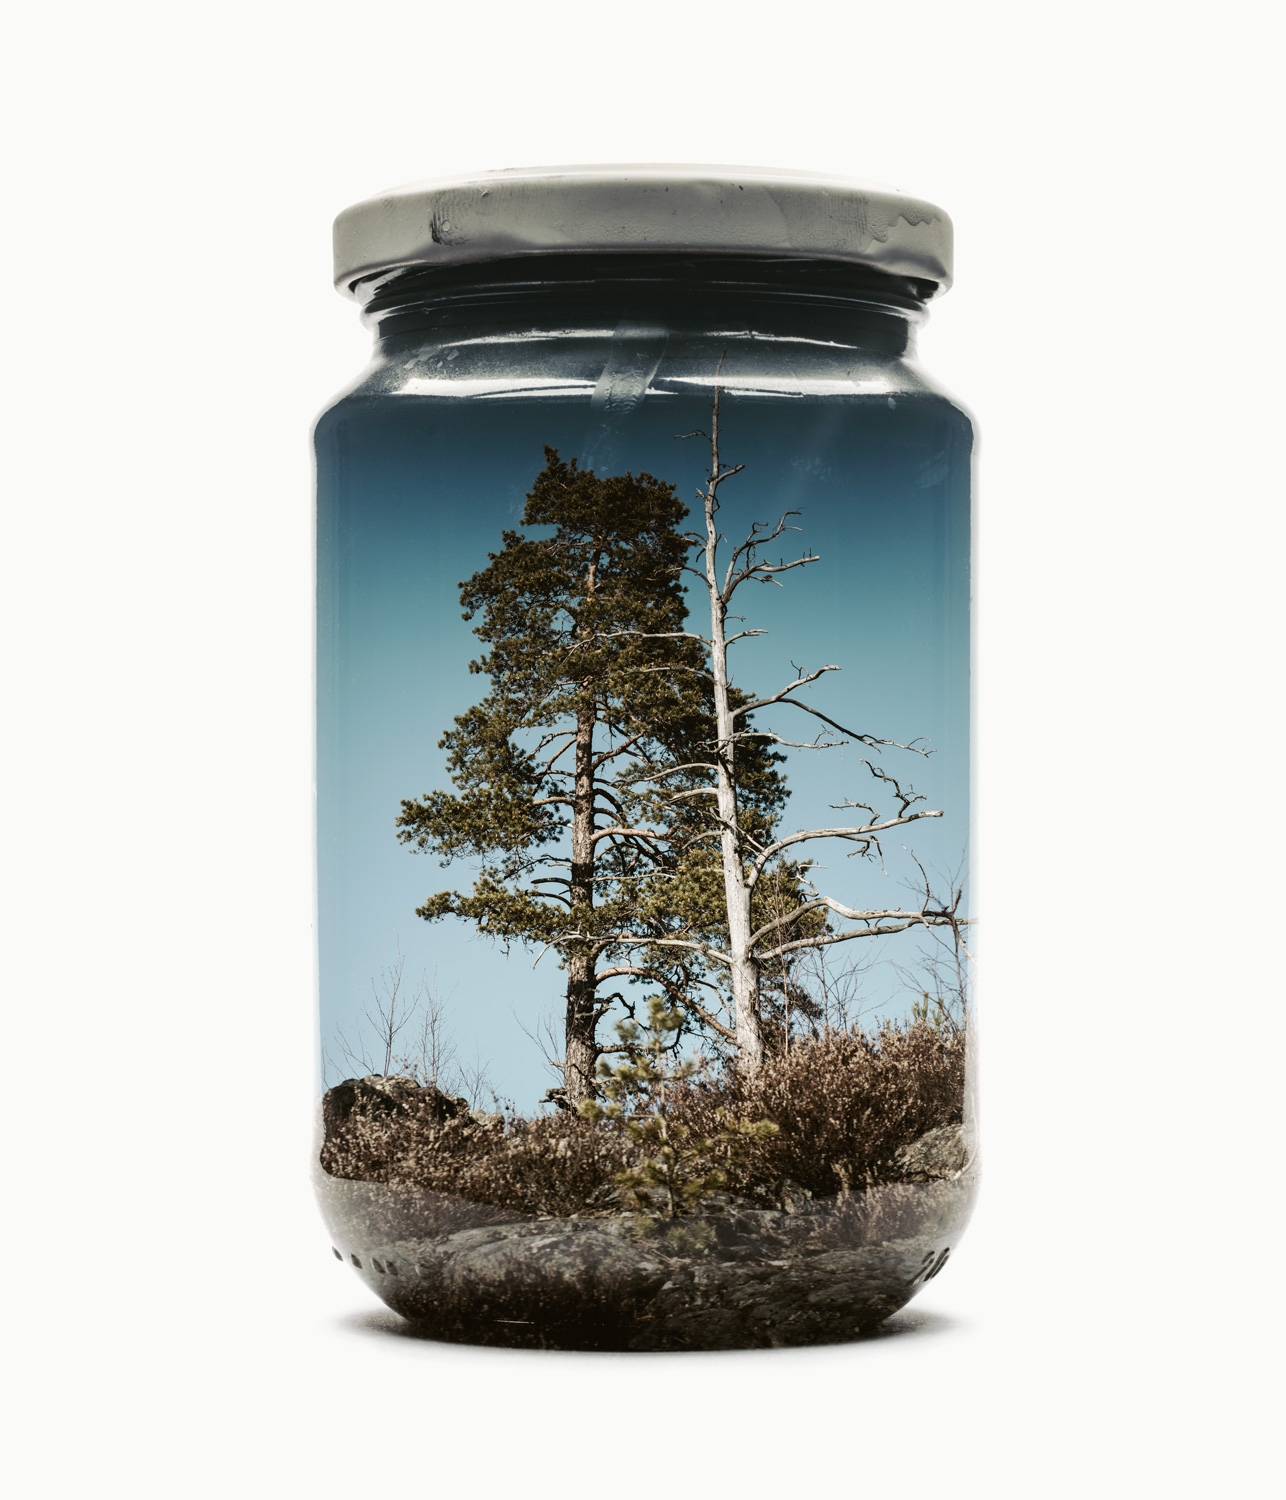 Visual Artwork: Jarred Couple Of Pines (Medium) by artist and creator Christoffer Relander